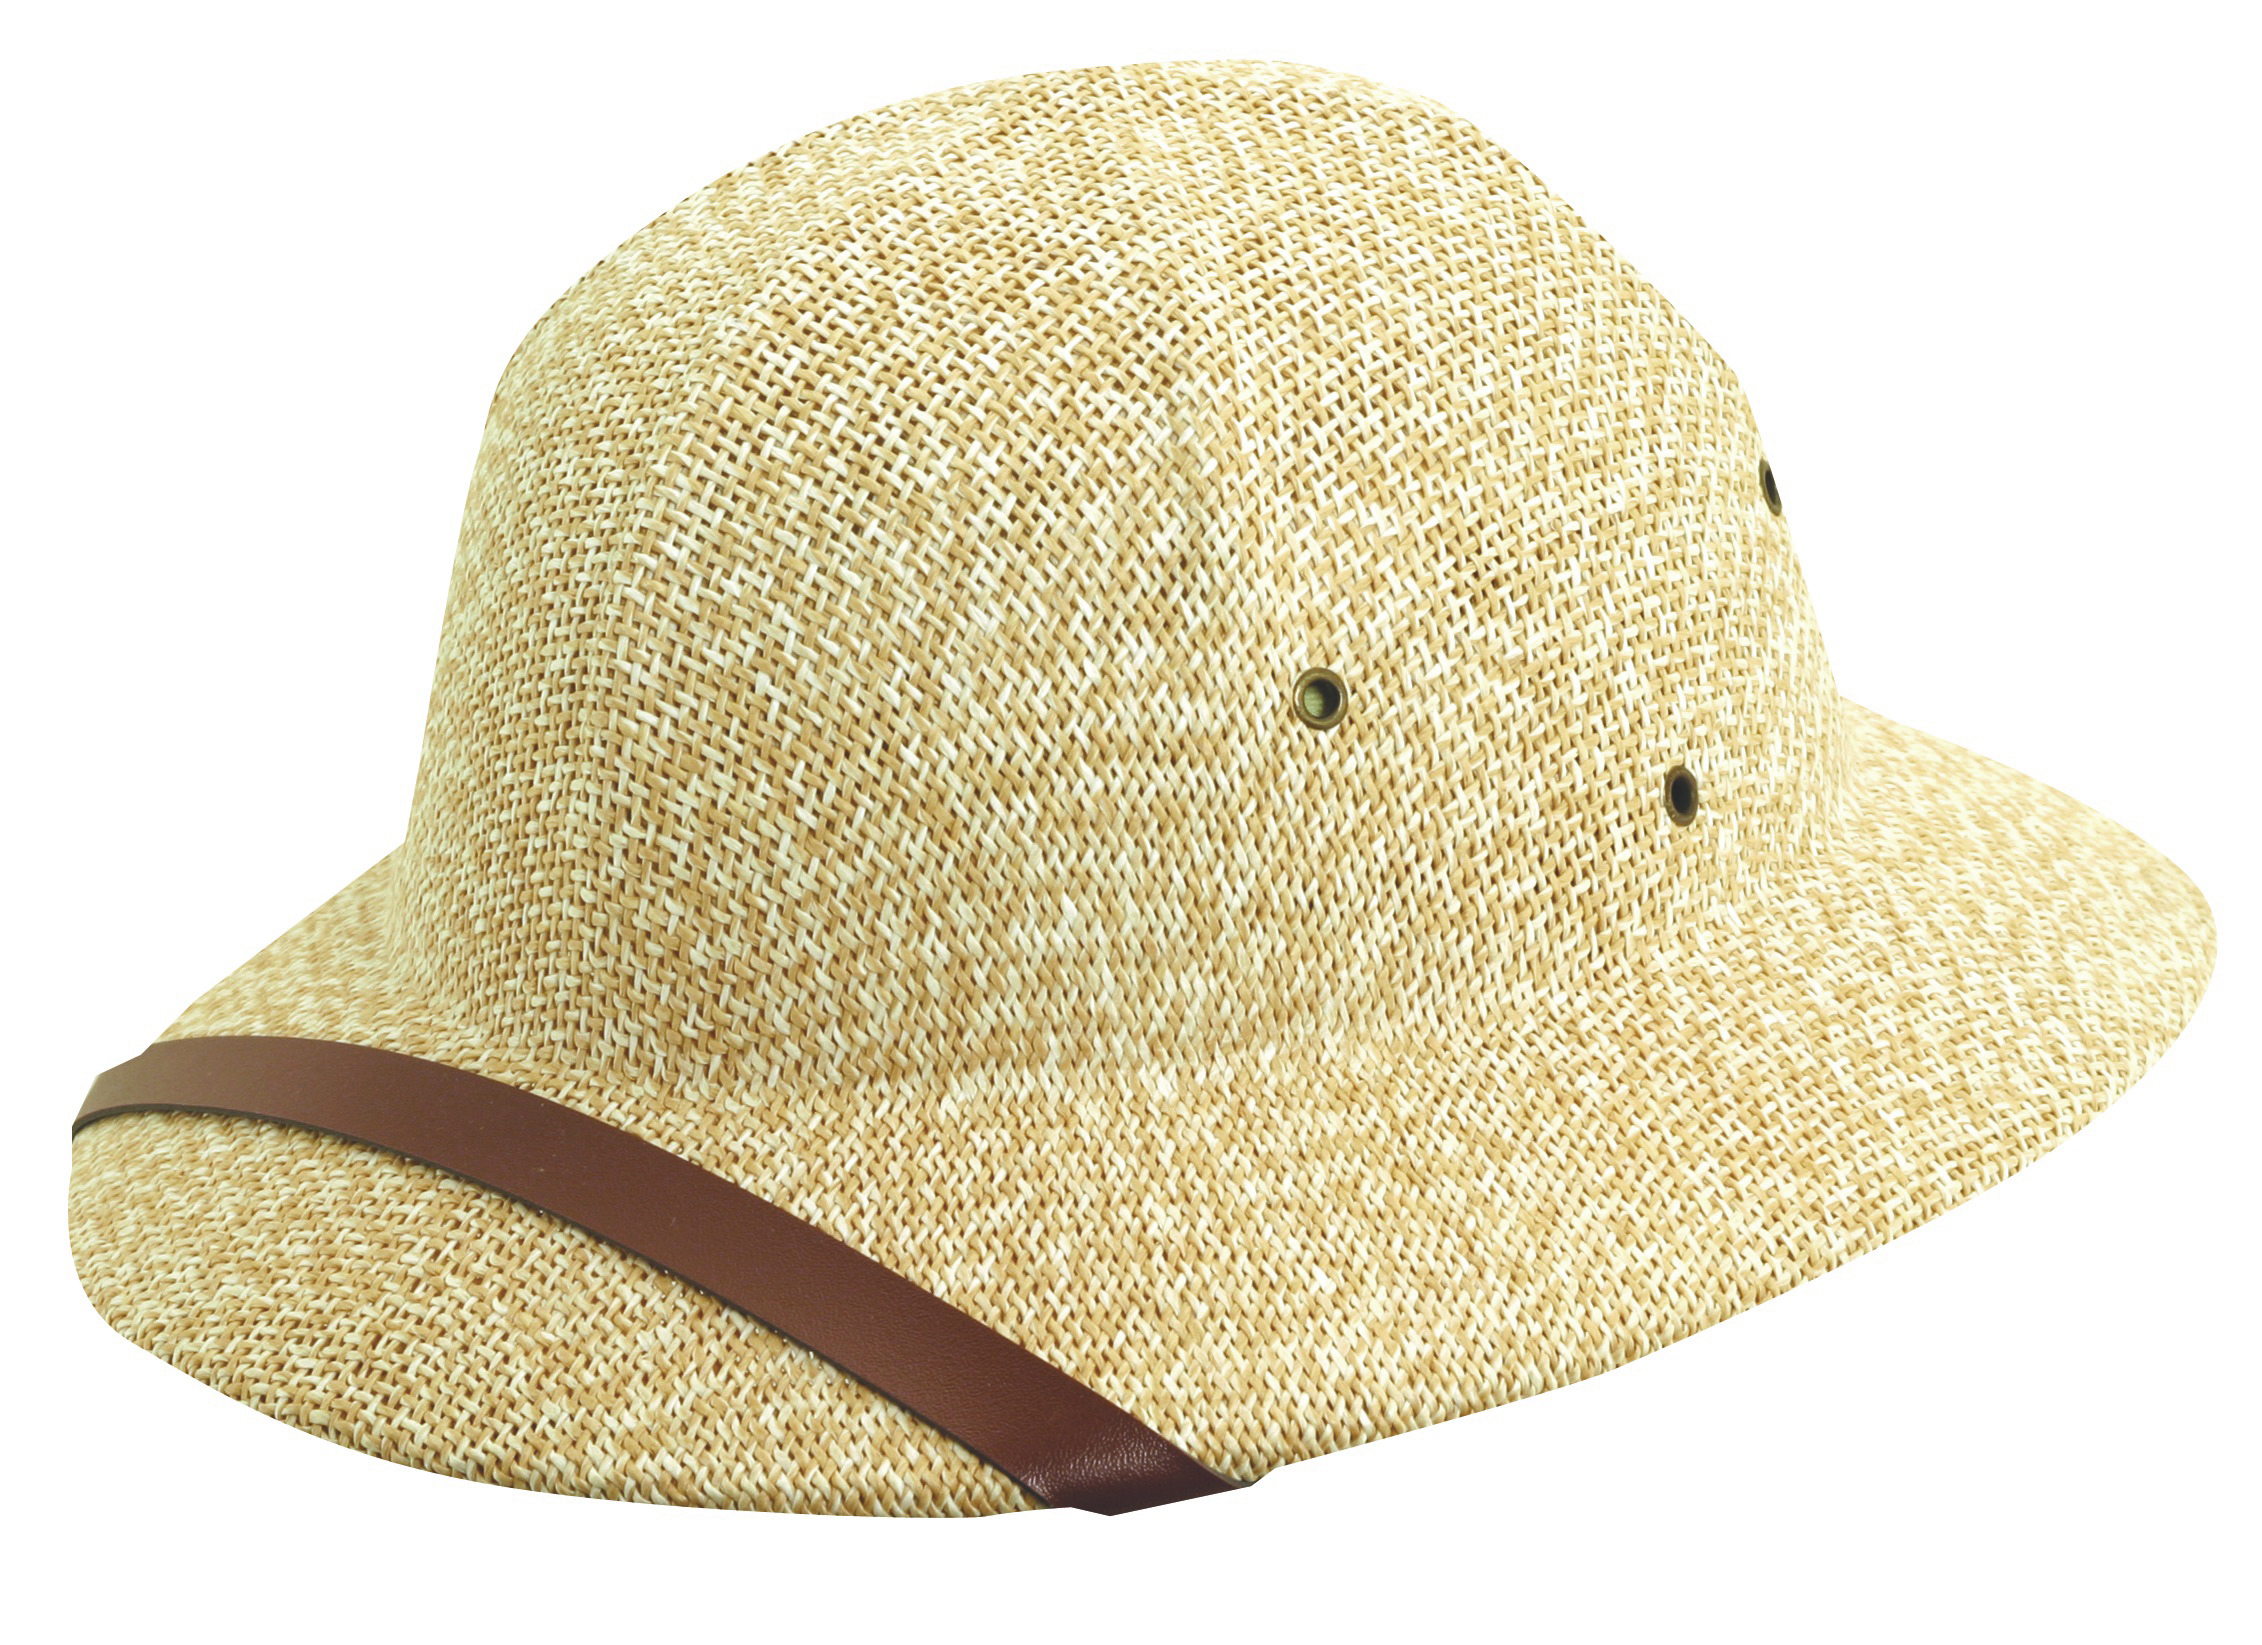 81c71dbe98cff Earth Ranger Dpc Camel Hemp Safari Hat